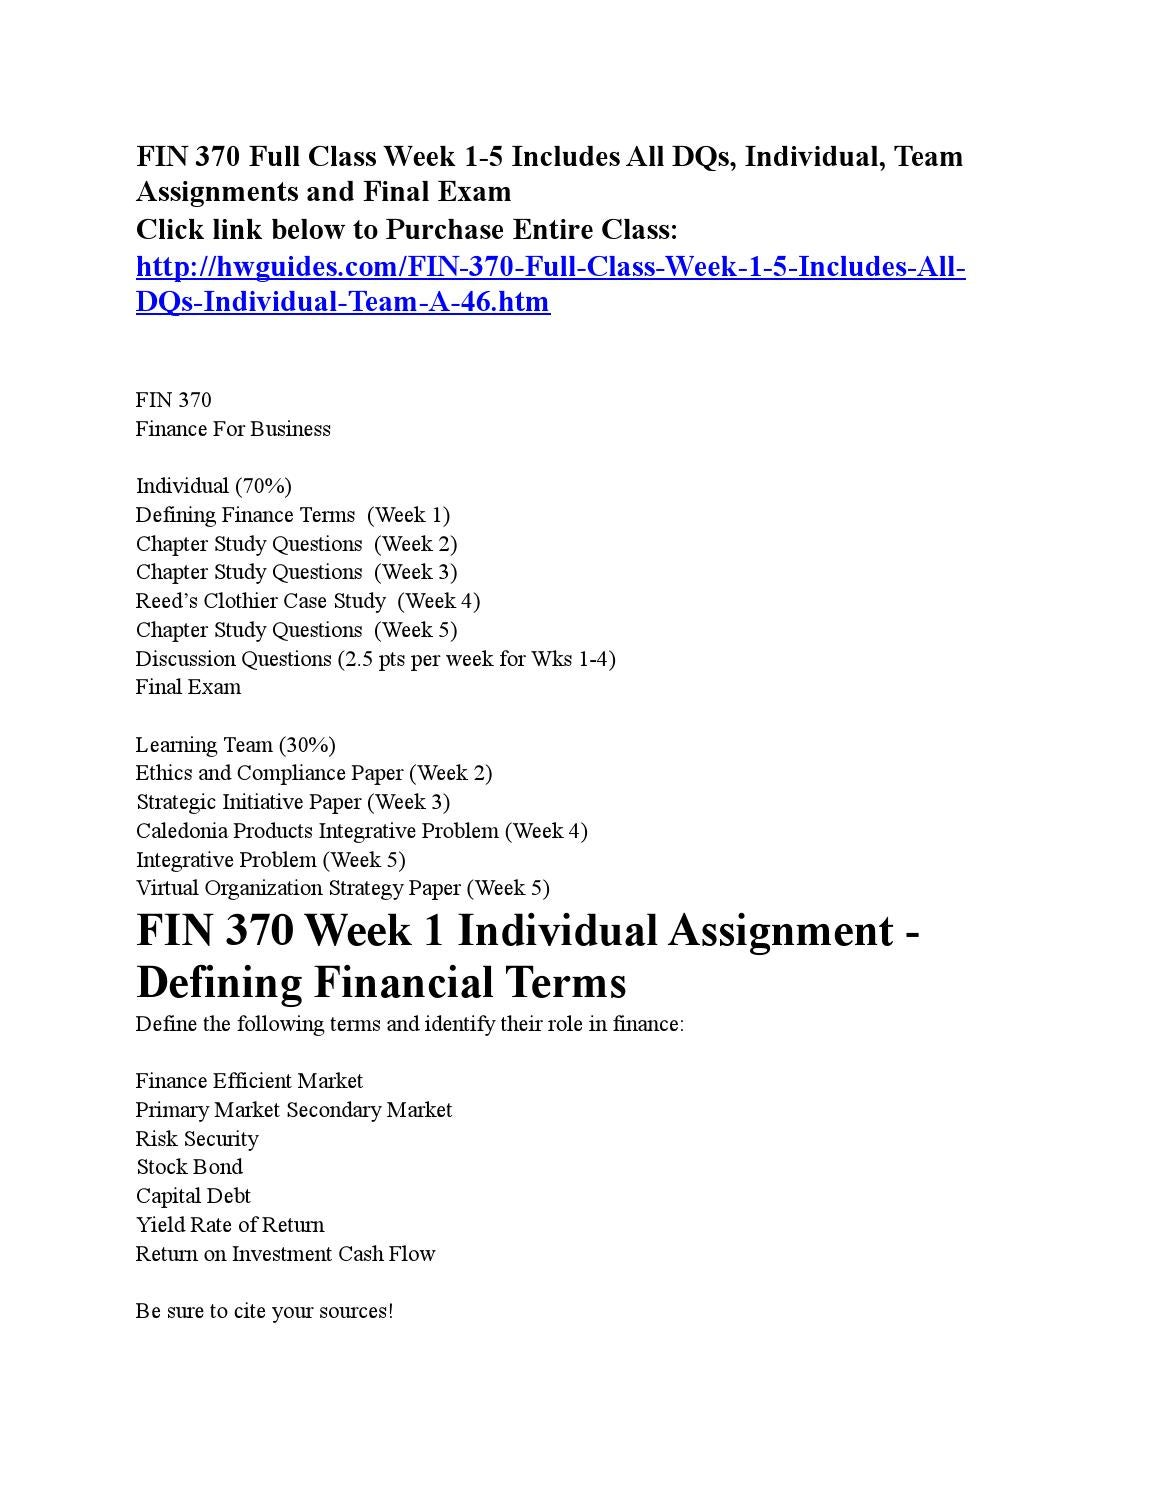 fin 370 week 5 integrative problem and virtual organization strategy paper Fin 370 - virtual organization strategy paper essay about fin/370 between this archive file contains fin 419 week 5 learning team assignment international.